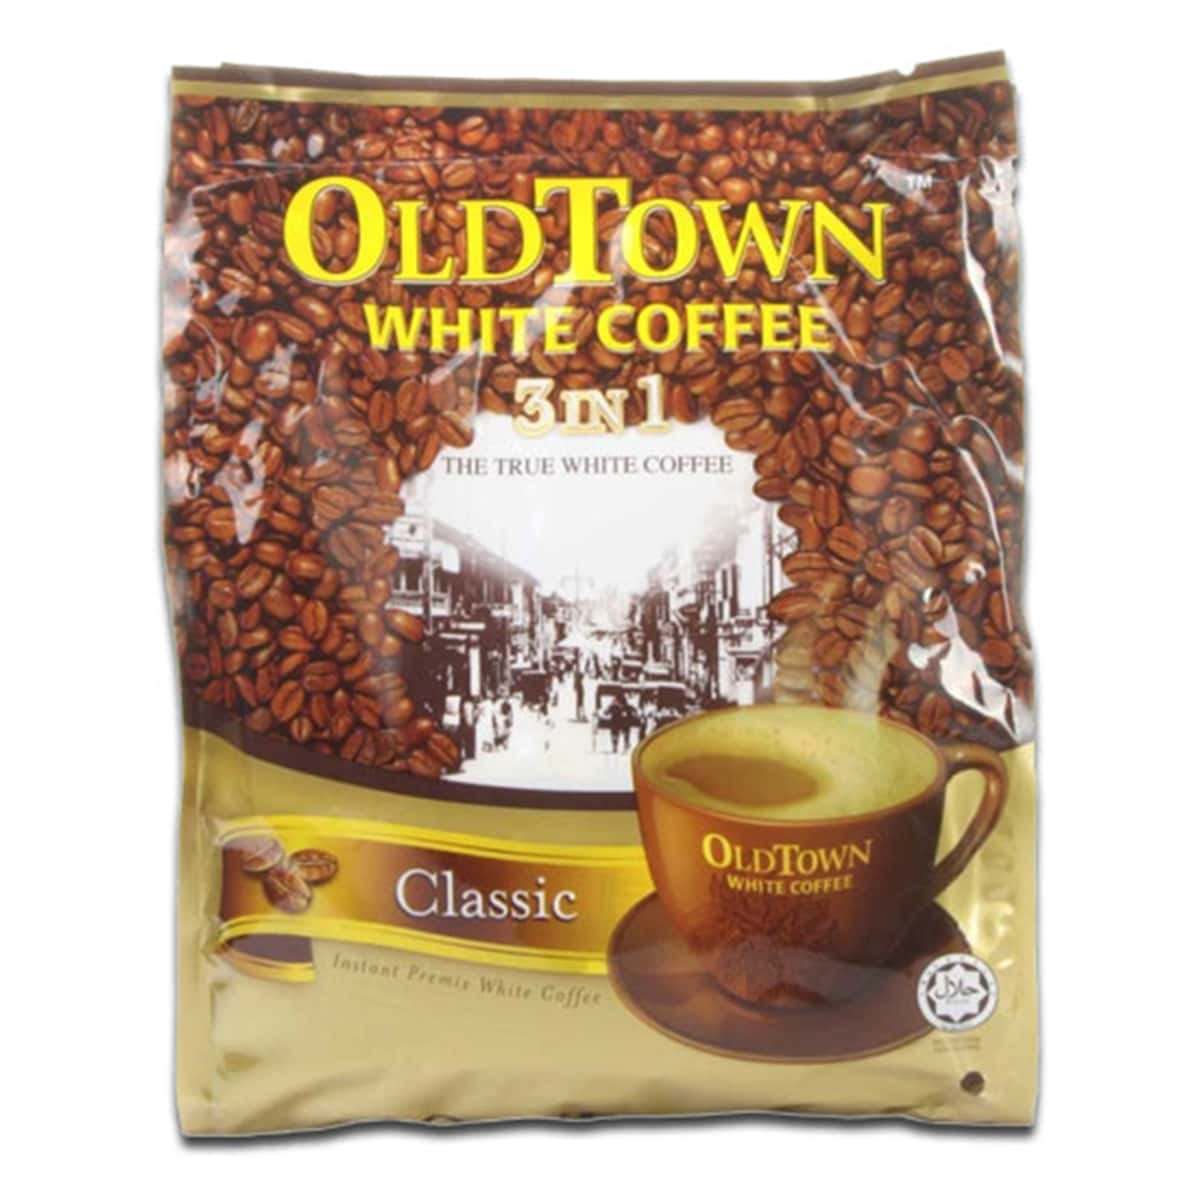 Buy Old Town White Coffee 3 in 1 (Classic Flavour) 40g X 15 Sachets - 600 gm